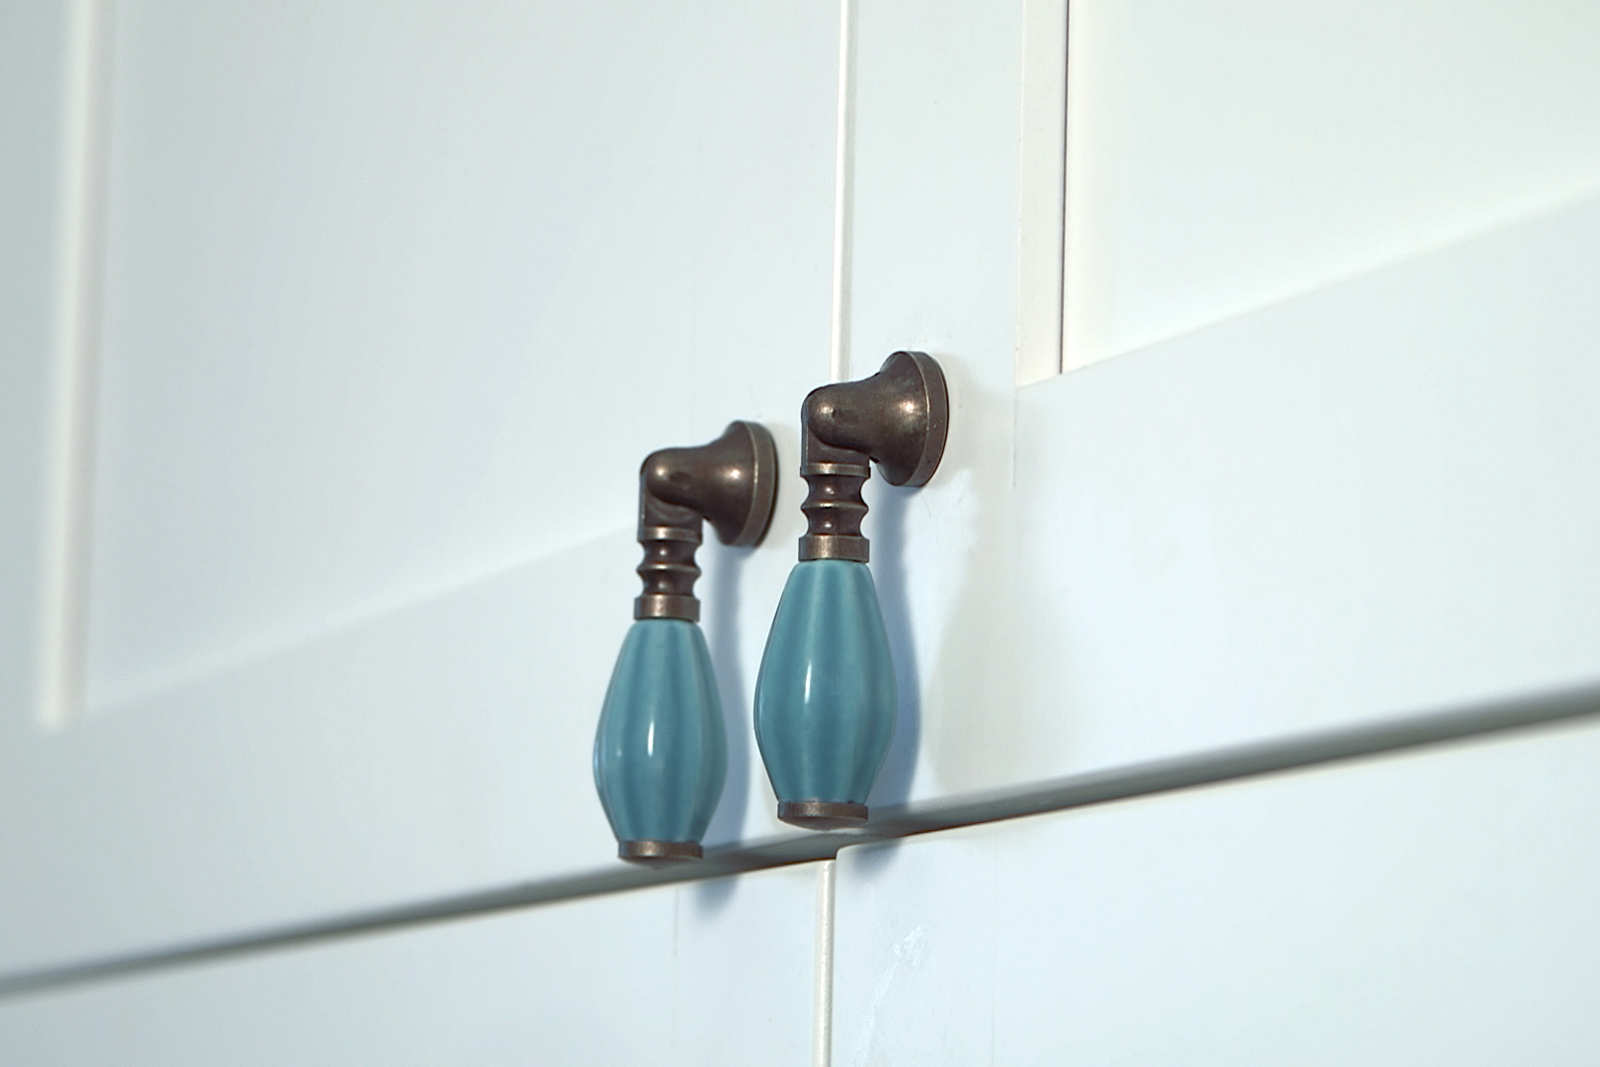 Diy Cabinet Knobs Kitchen Cabinet Hardware Upgrade Kitchen Cabinet Hardware